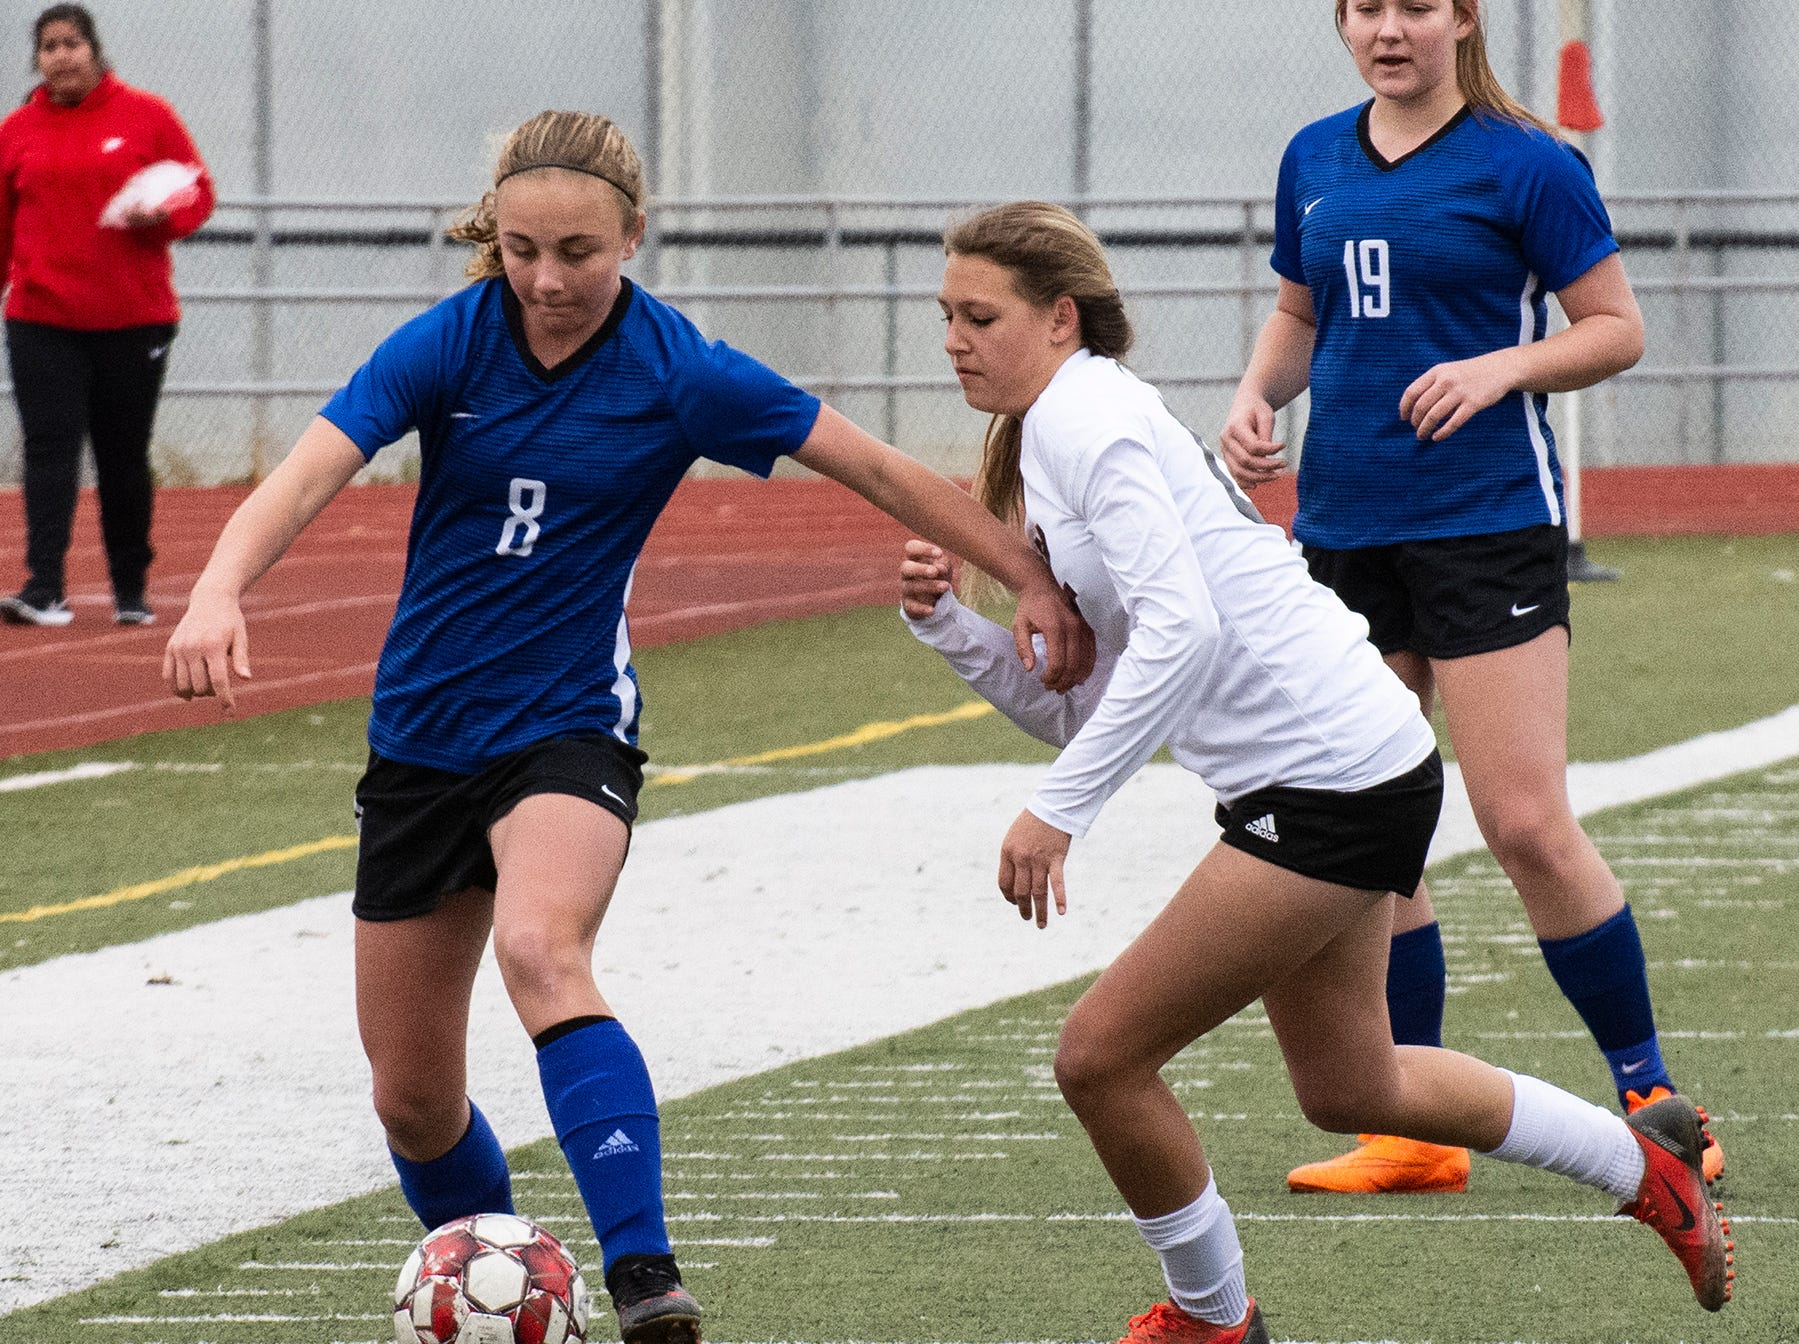 U-Prep midfielder Rebecca Gaido shields the ball from Corning's Brianna Cardoso during the Panthers' 4-1 win in the Division II Northern Section championship on Saturday, Feb. 23.